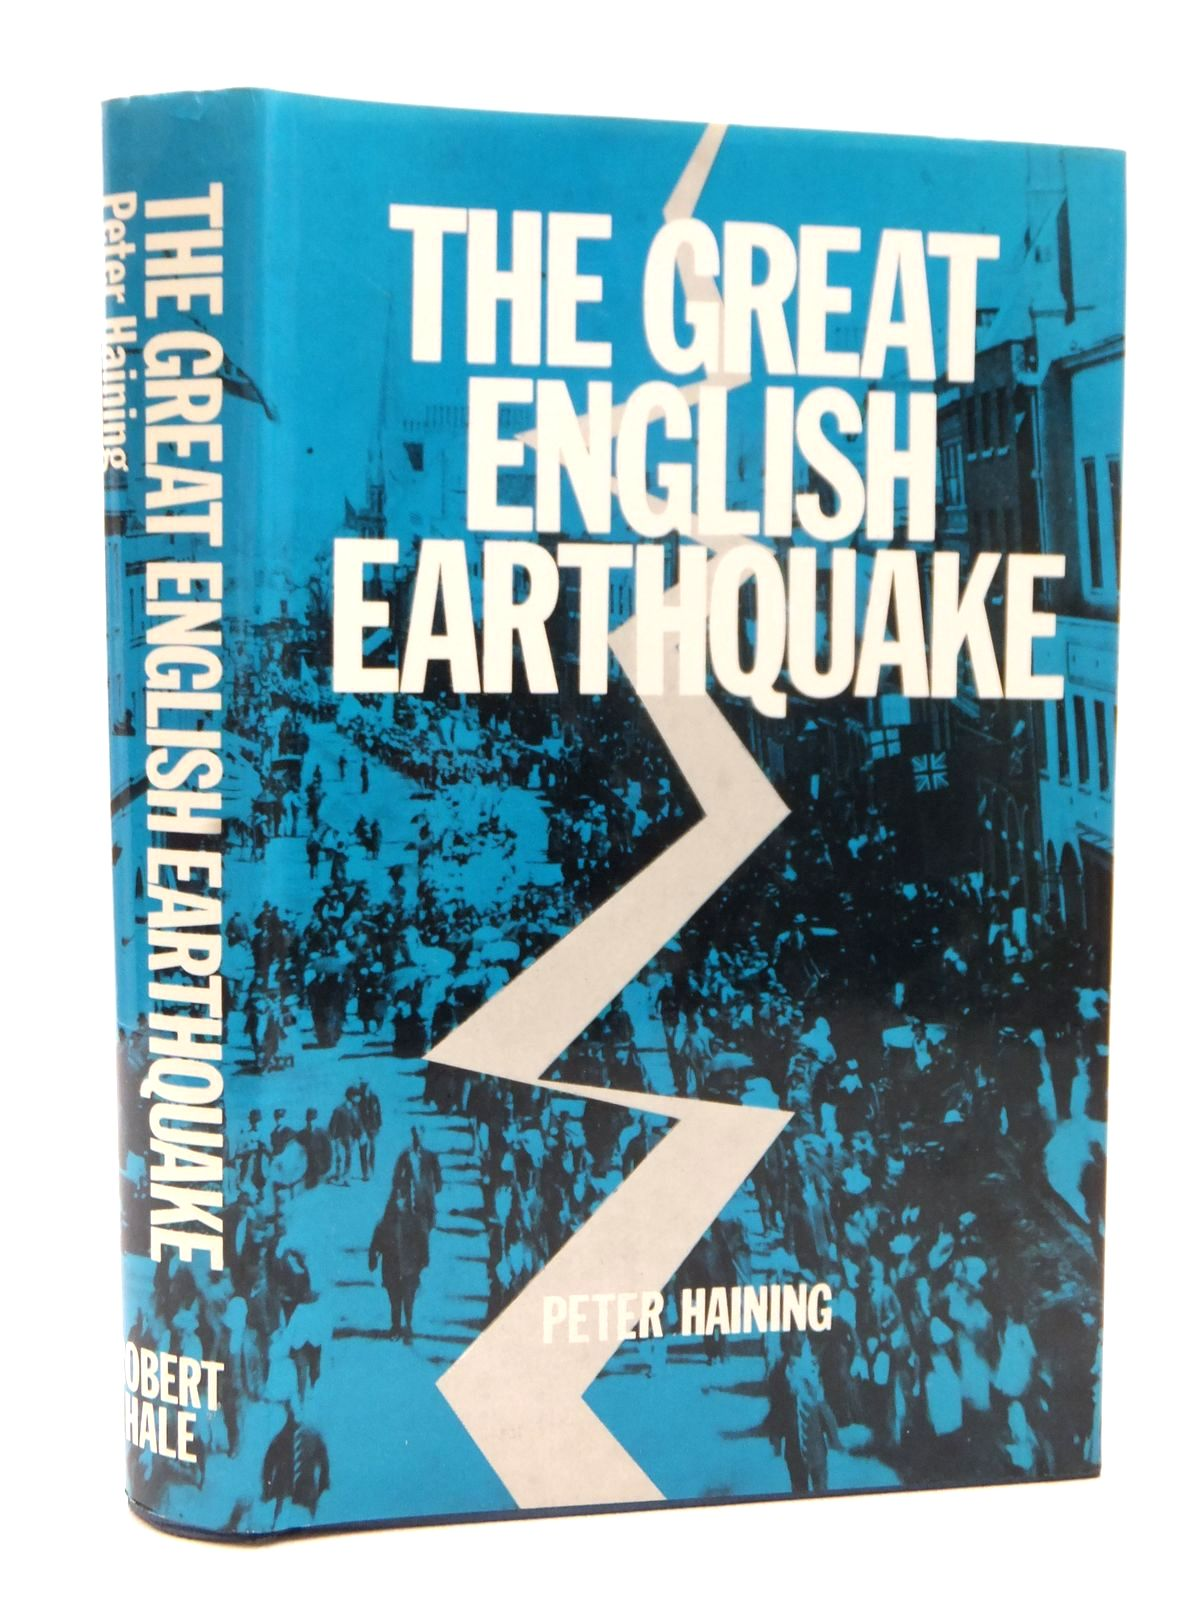 Photo of THE GREAT ENGLISH EARTHQUAKE written by Haining, Peter published by Robert Hale (STOCK CODE: 1609114)  for sale by Stella & Rose's Books